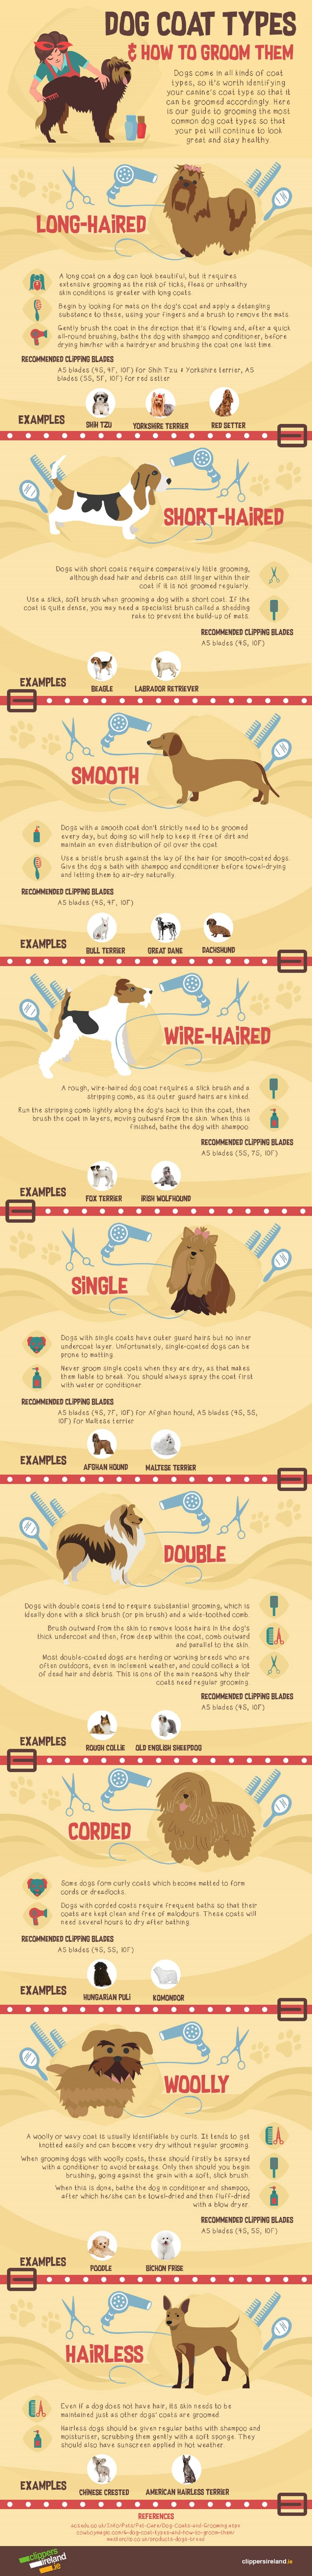 dog-coat-types-how-to-groom-them-infographic